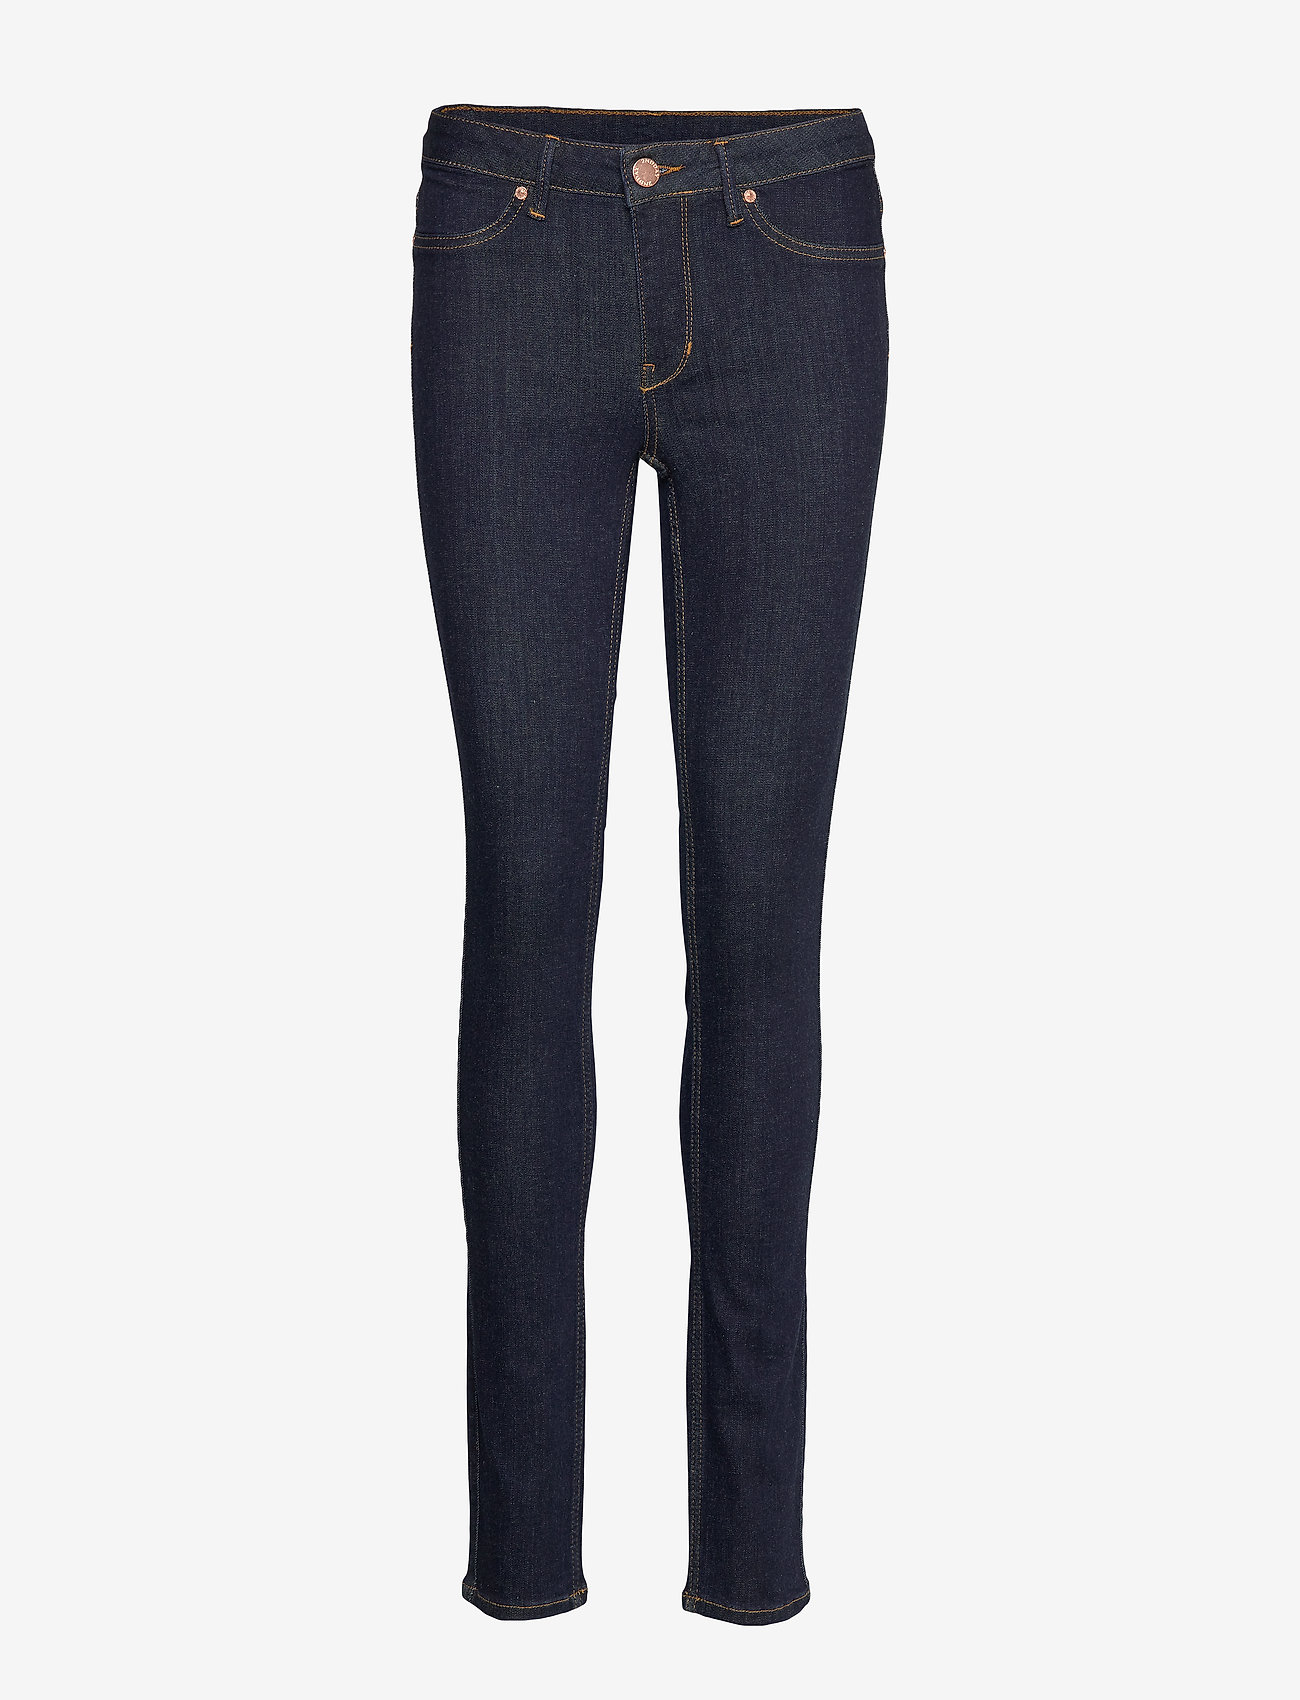 2NDDAY - 2ND Jolie Deep - skinny jeans - dark blue - 0